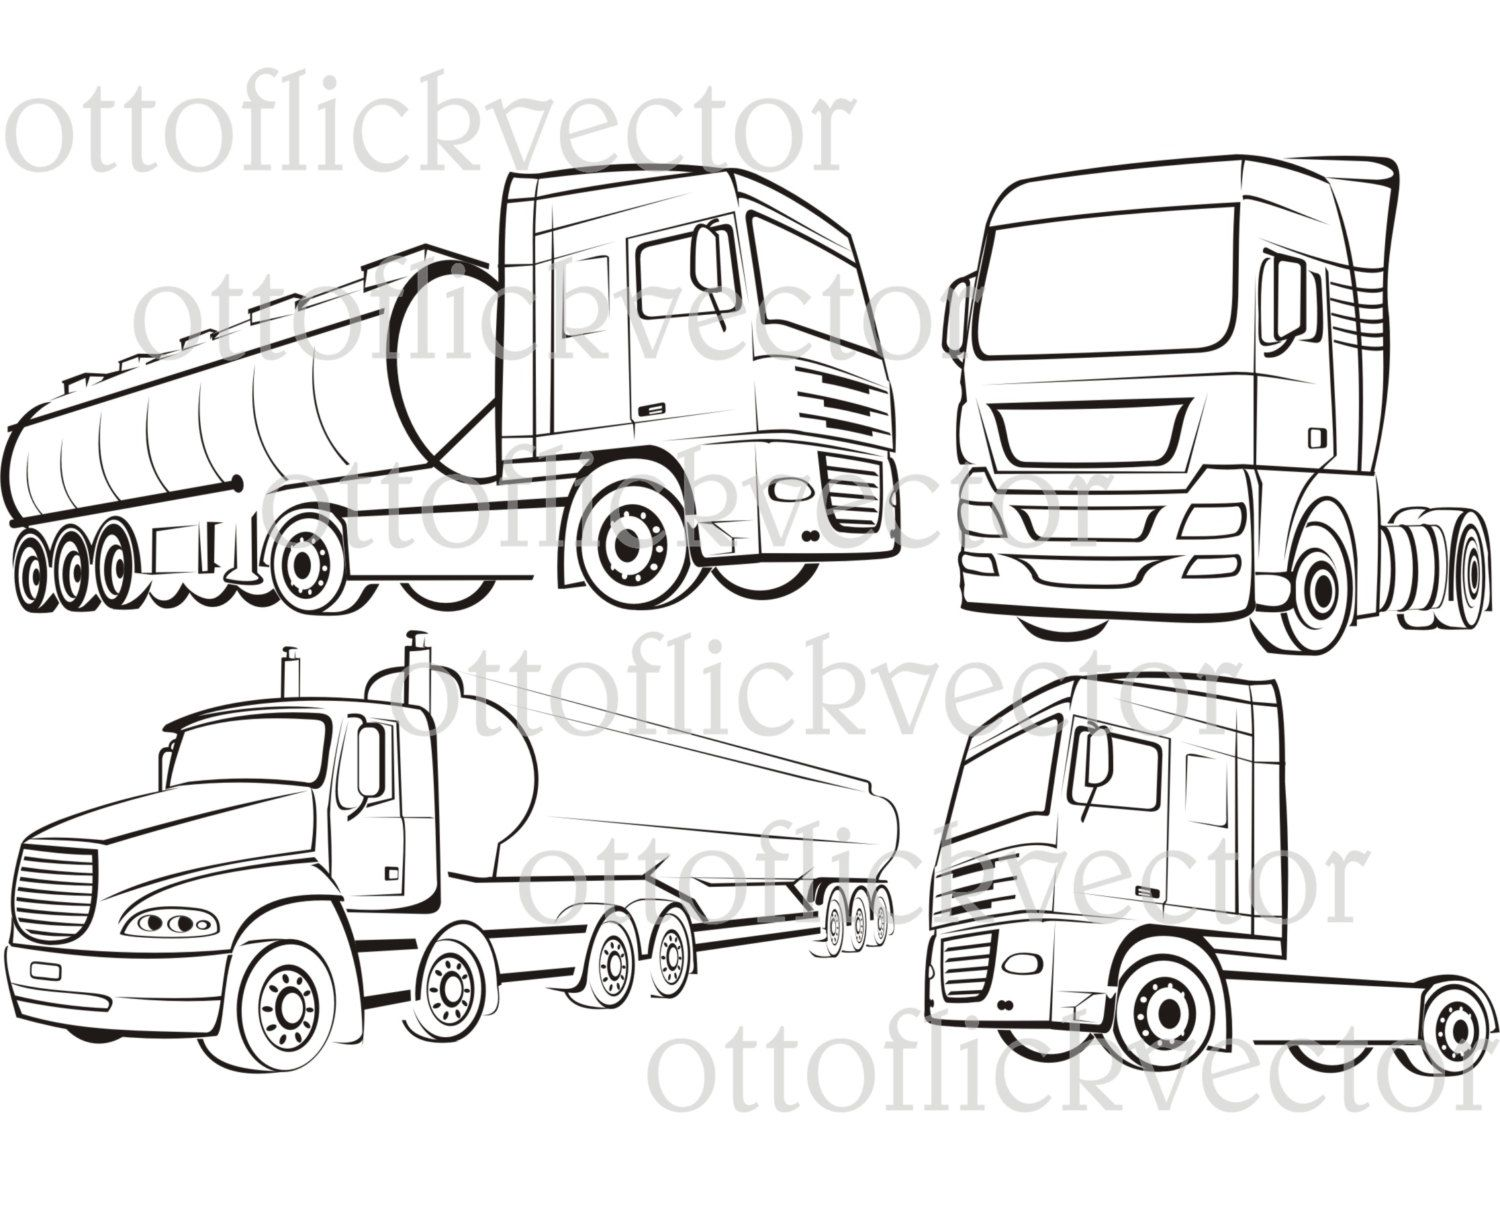 Land for production clipart black and white outline transparent stock TRUCK, TIR, LORRY silhouettes and vector outlines, vector ... transparent stock